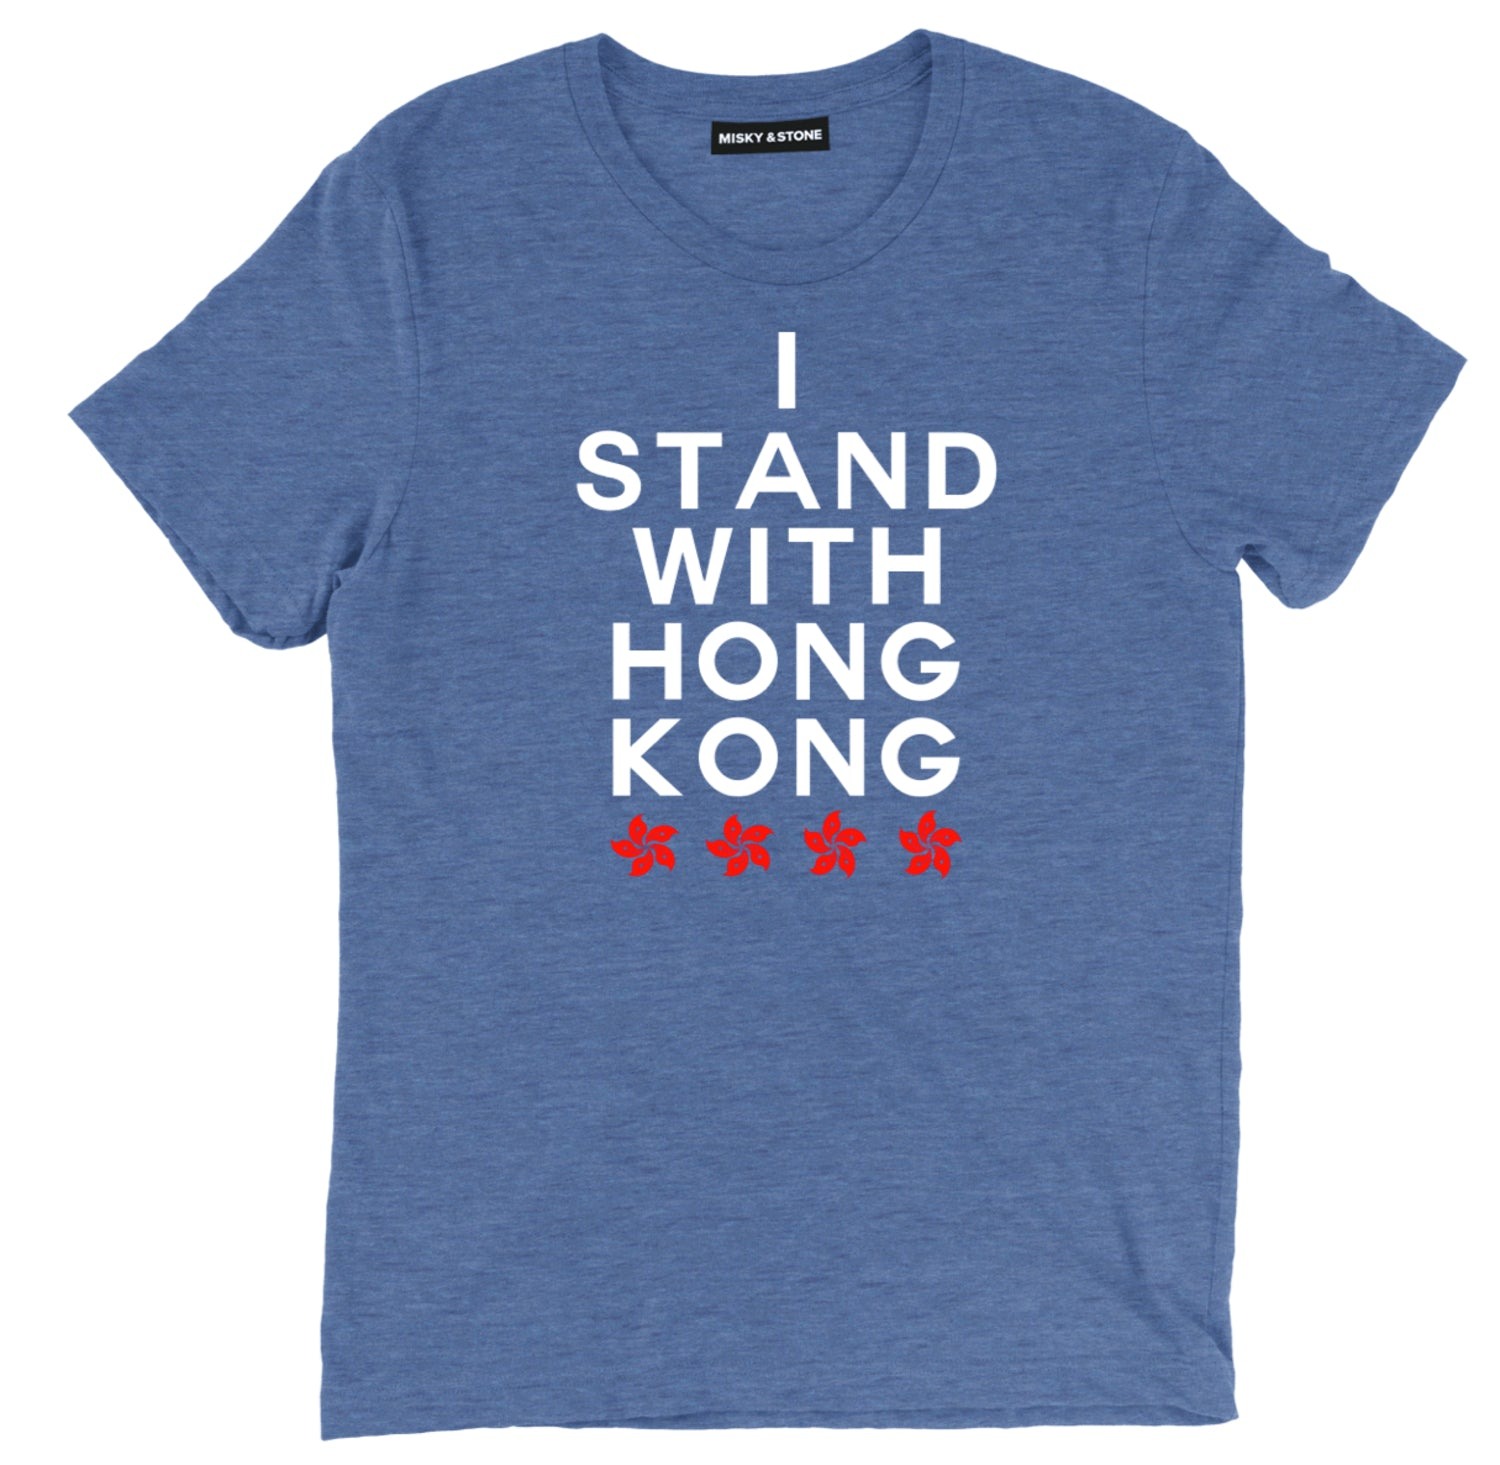 I Stand With Hong Kong Tee